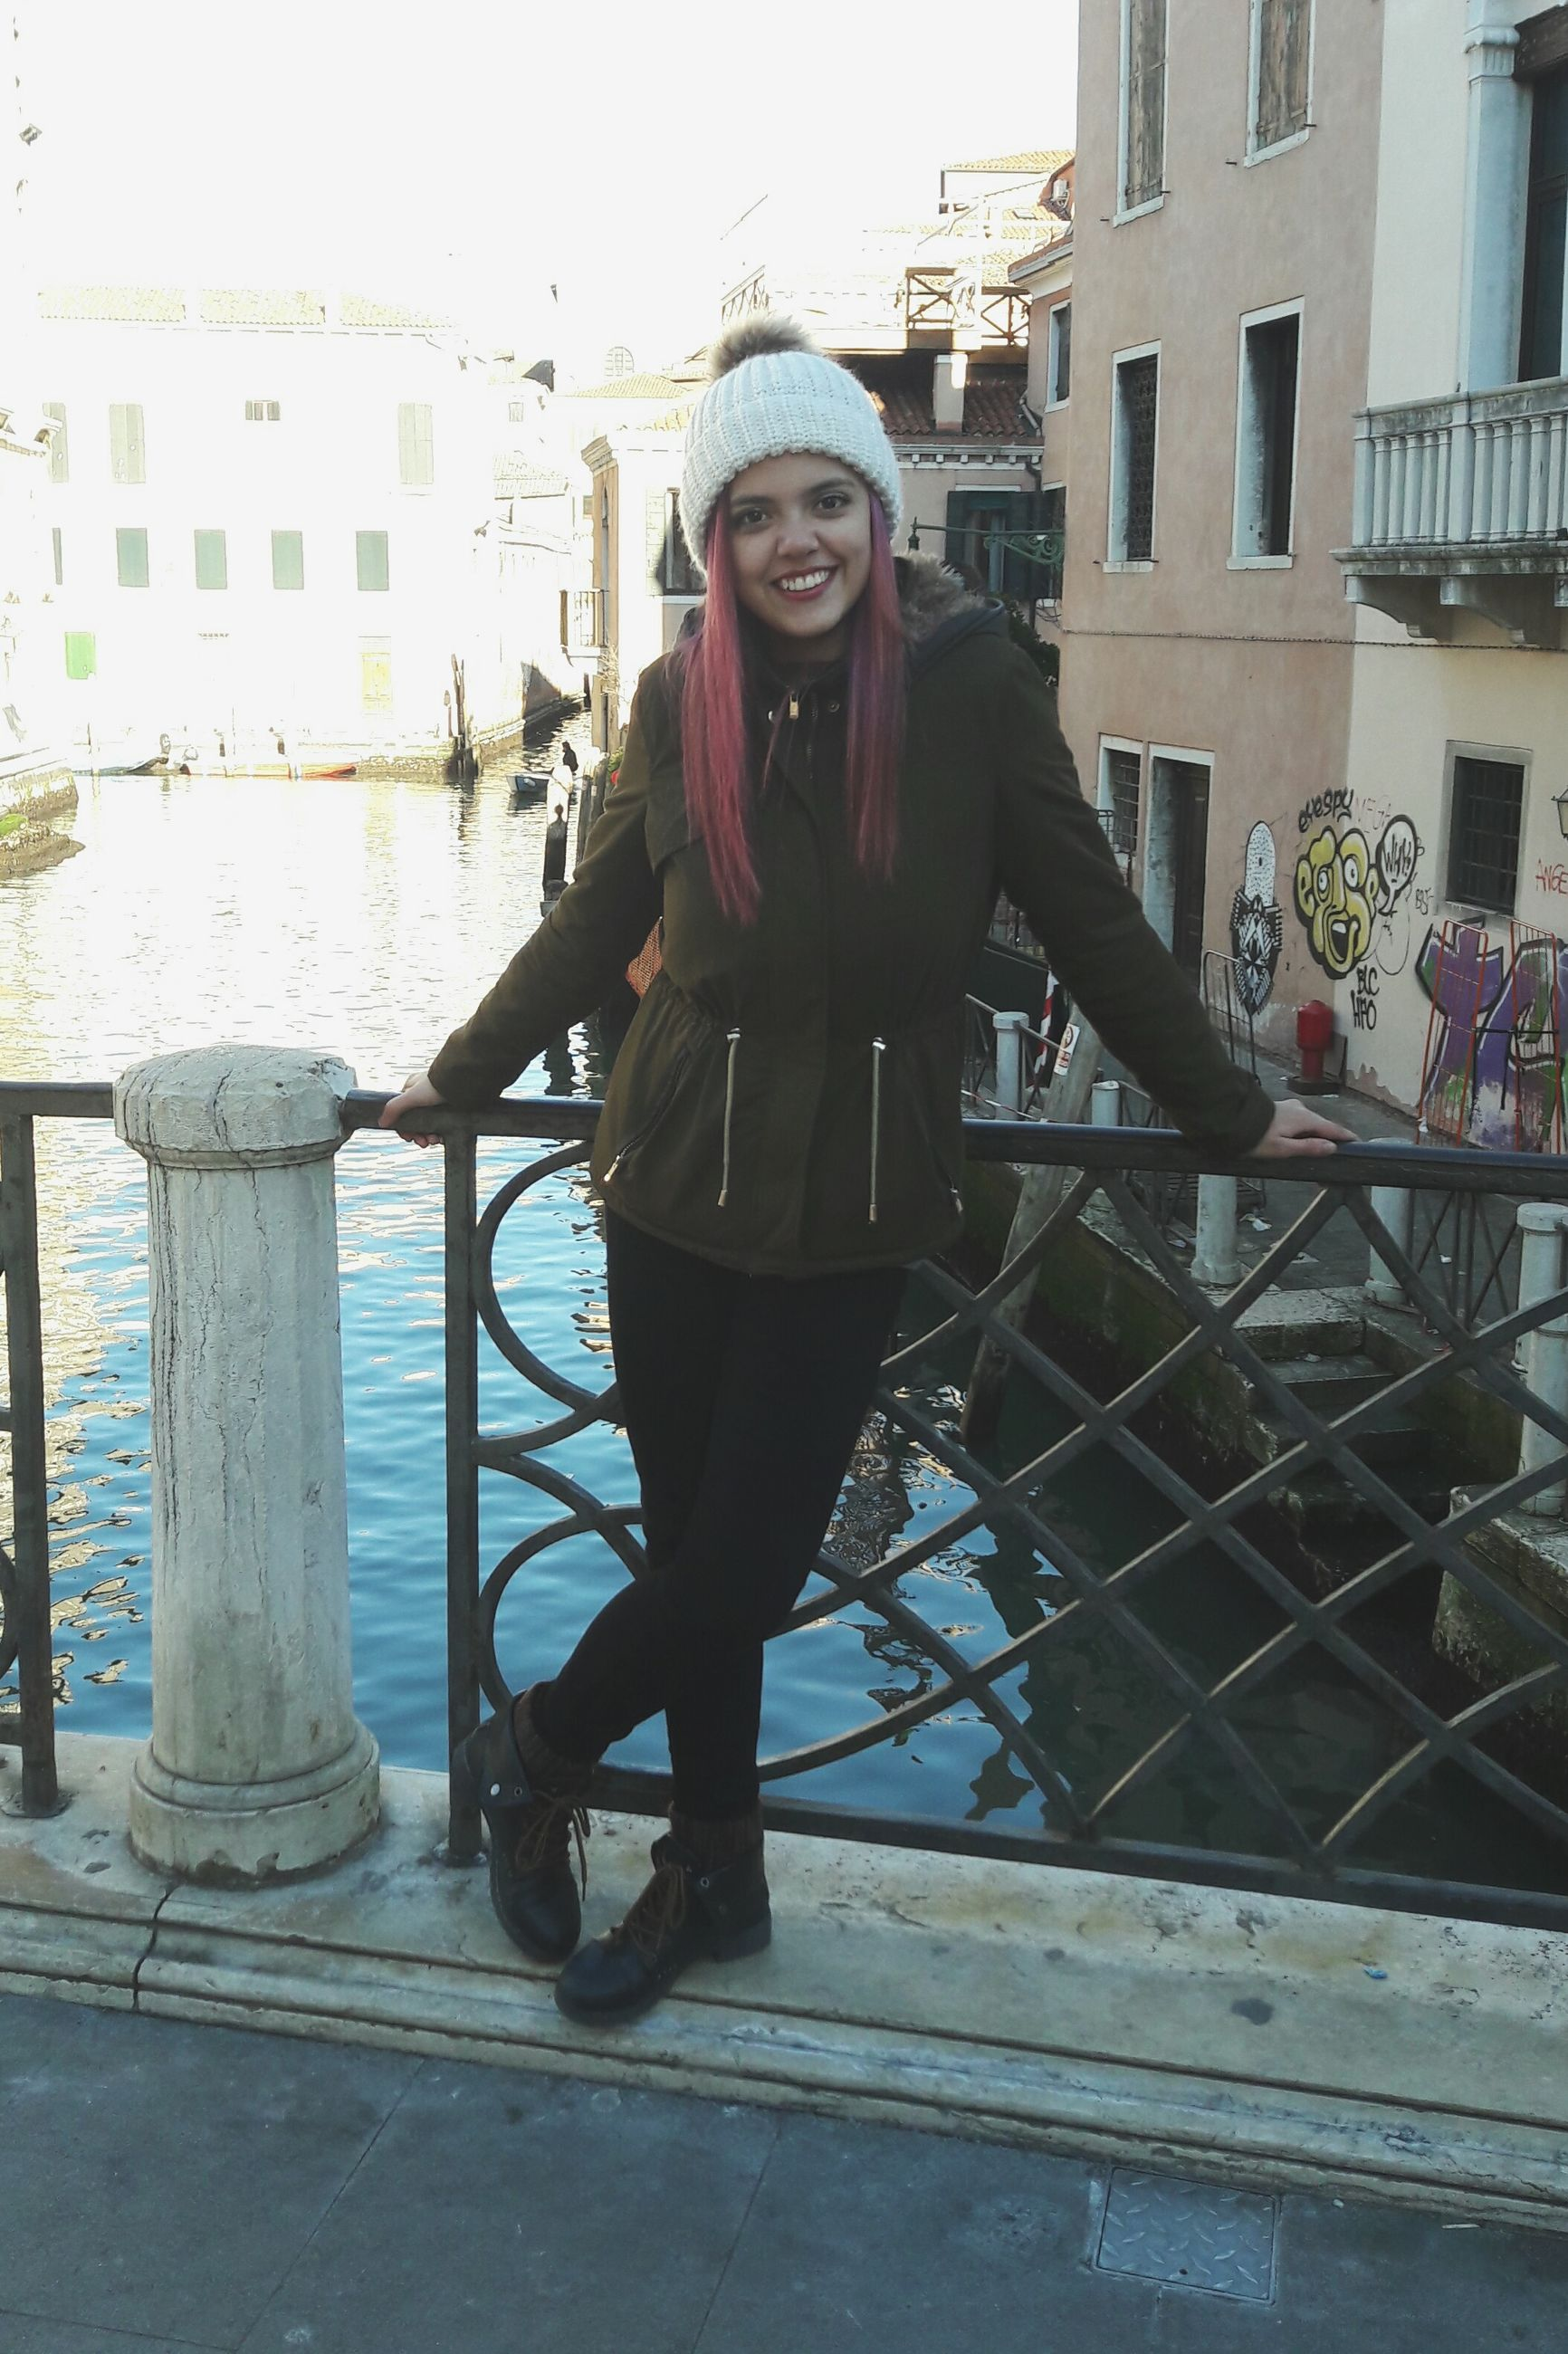 full length, looking at camera, one person, lifestyles, portrait, real people, warm clothing, leisure activity, knit hat, outdoors, happiness, front view, day, young women, city, built structure, building exterior, architecture, smiling, sky, one woman only, water, young adult, adults only, people, adult